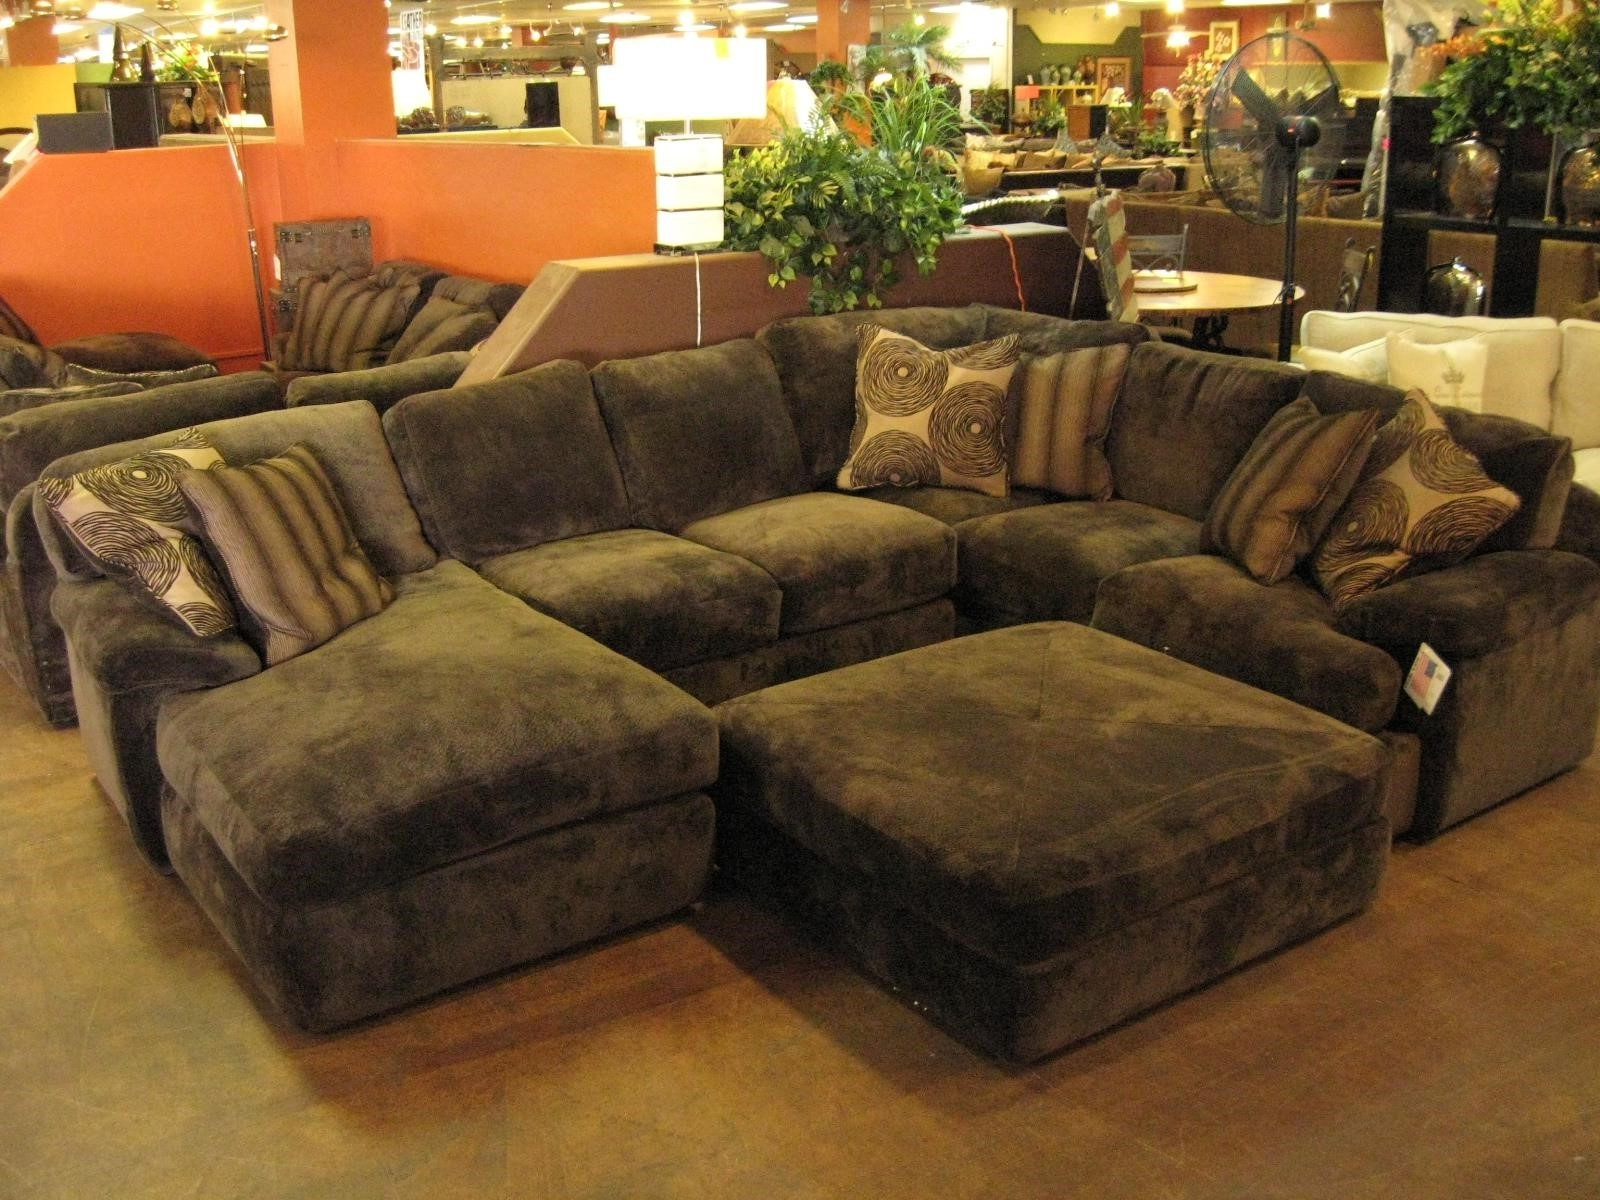 Most Recent Couches With Large Ottoman Intended For Sectional Sofas Large Sofa With Ottoman Regard To Idea (View 9 of 20)